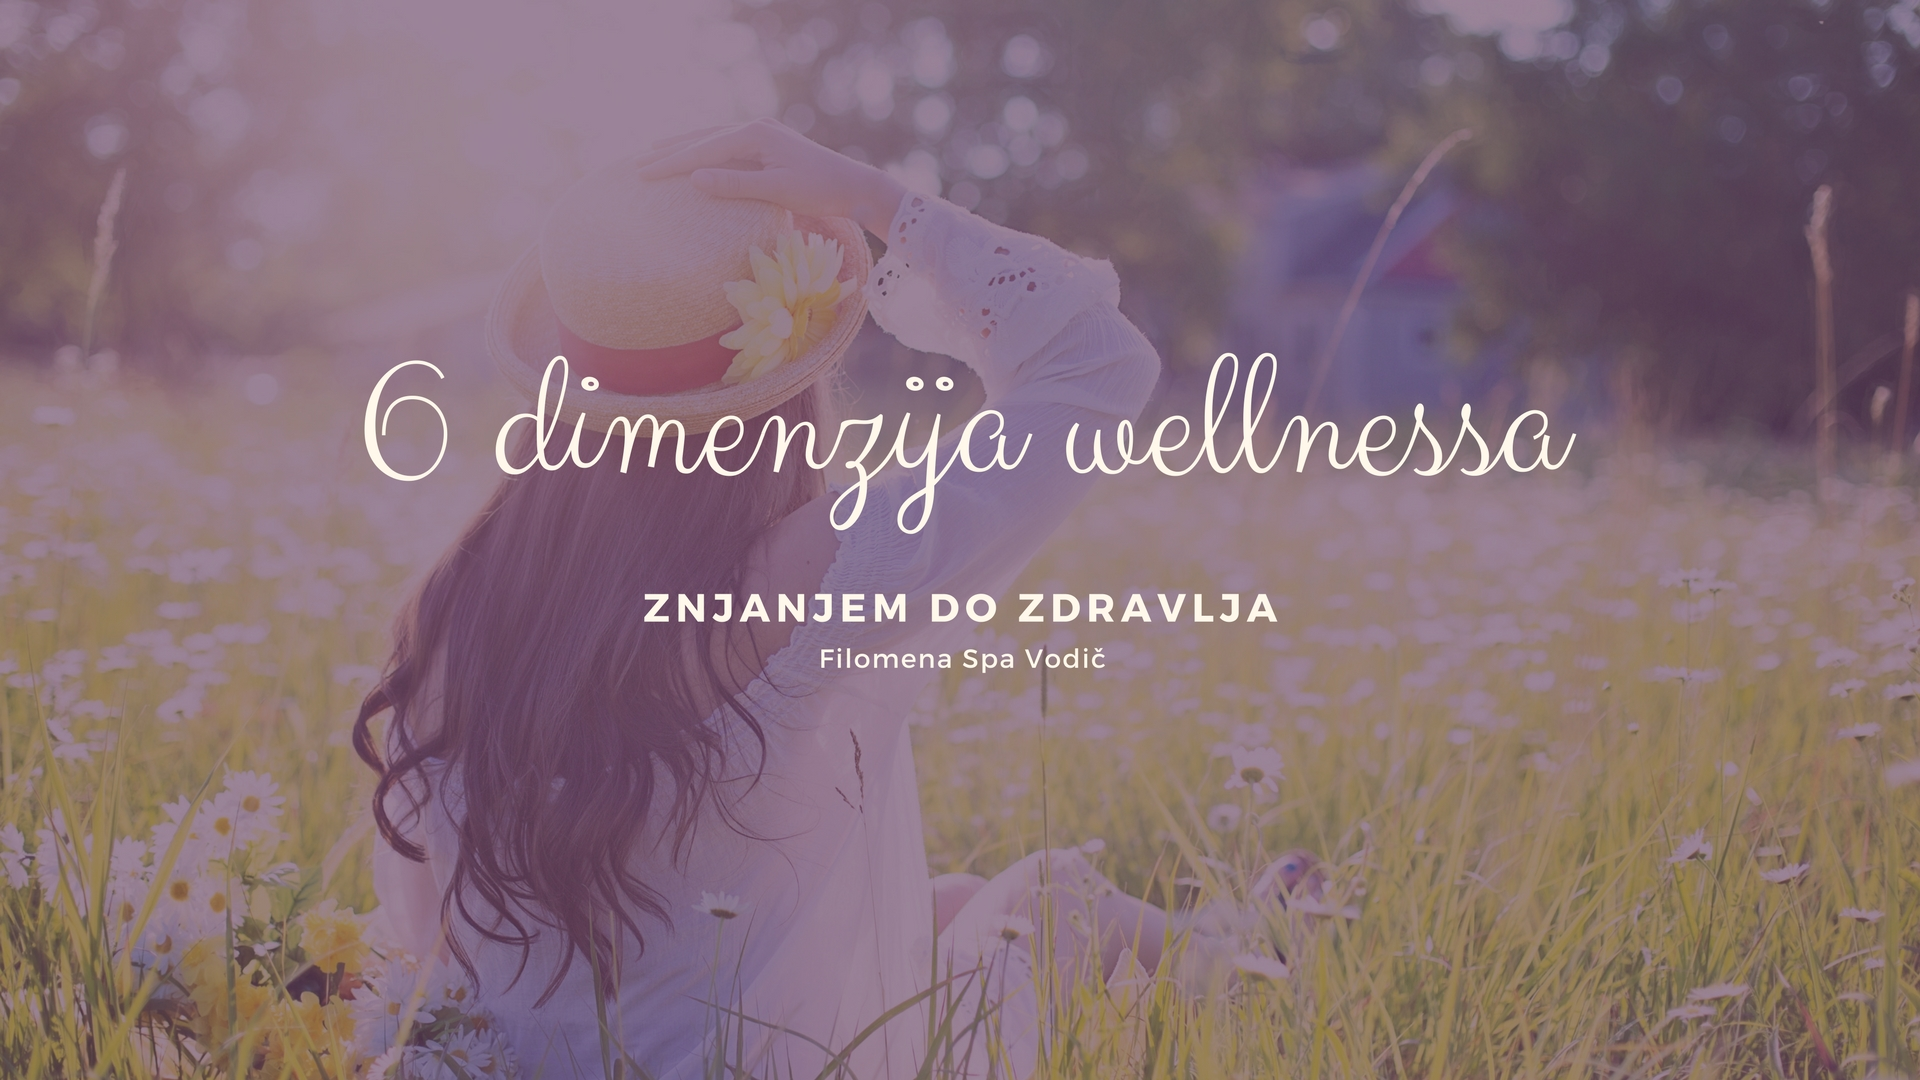 6 dimenzija wellnessa Filomena Spa Svijet Wellnessa